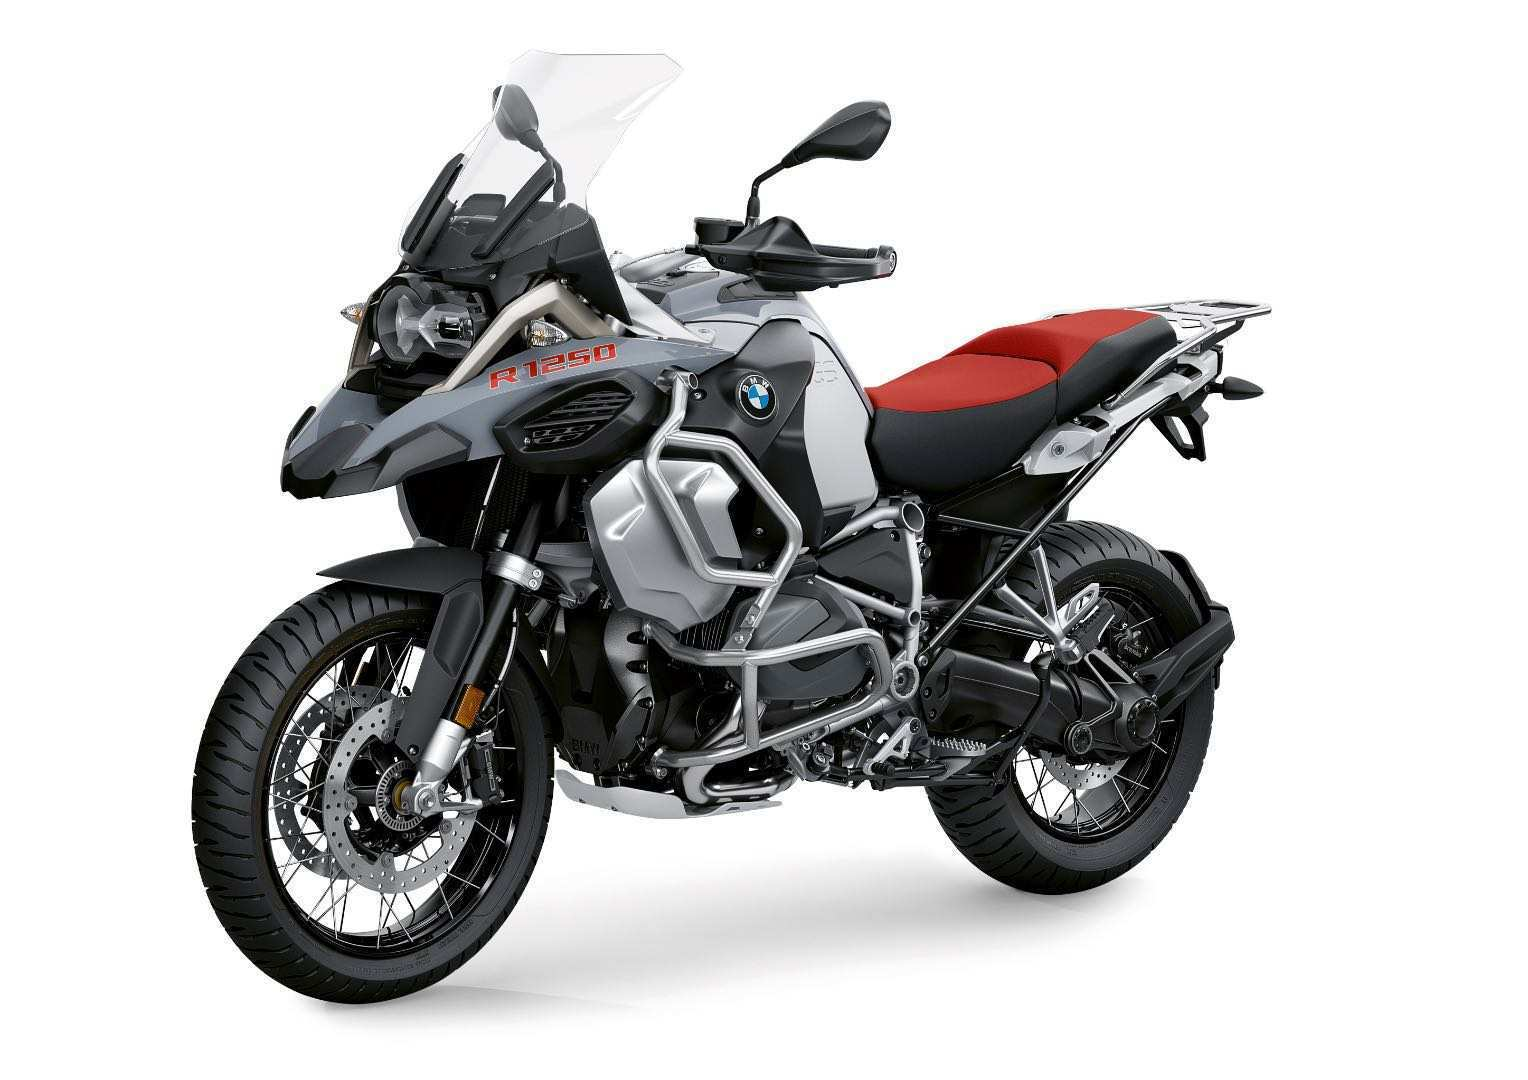 20 All New 2019 Bmw 1200 Gs Adventure Model with 2019 Bmw 1200 Gs Adventure